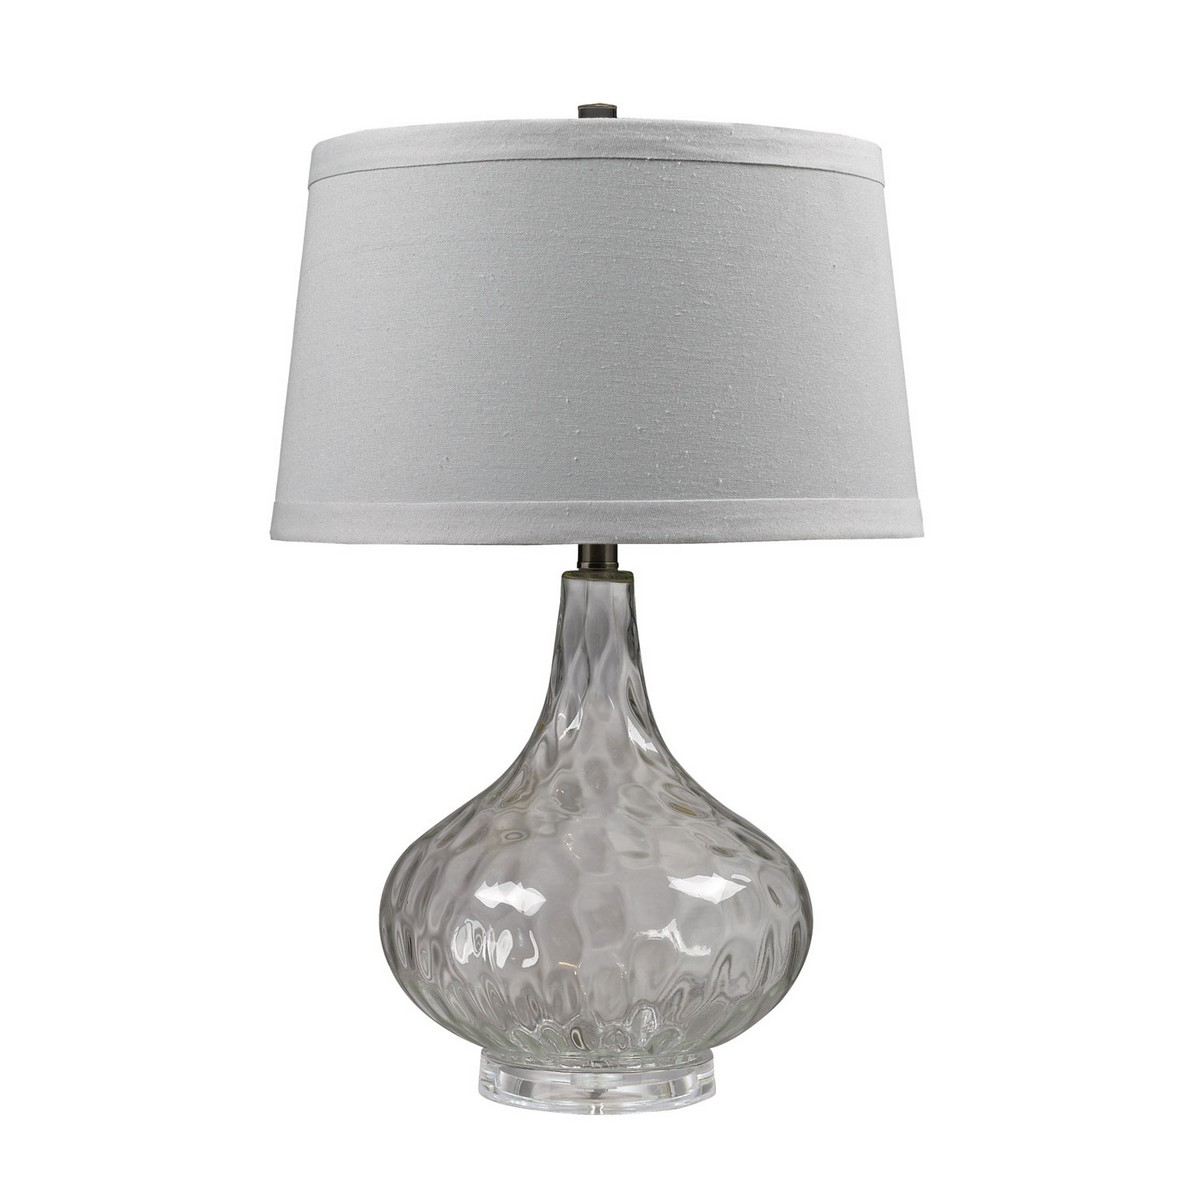 Elk Lighting D147 Table Lamp - Clear